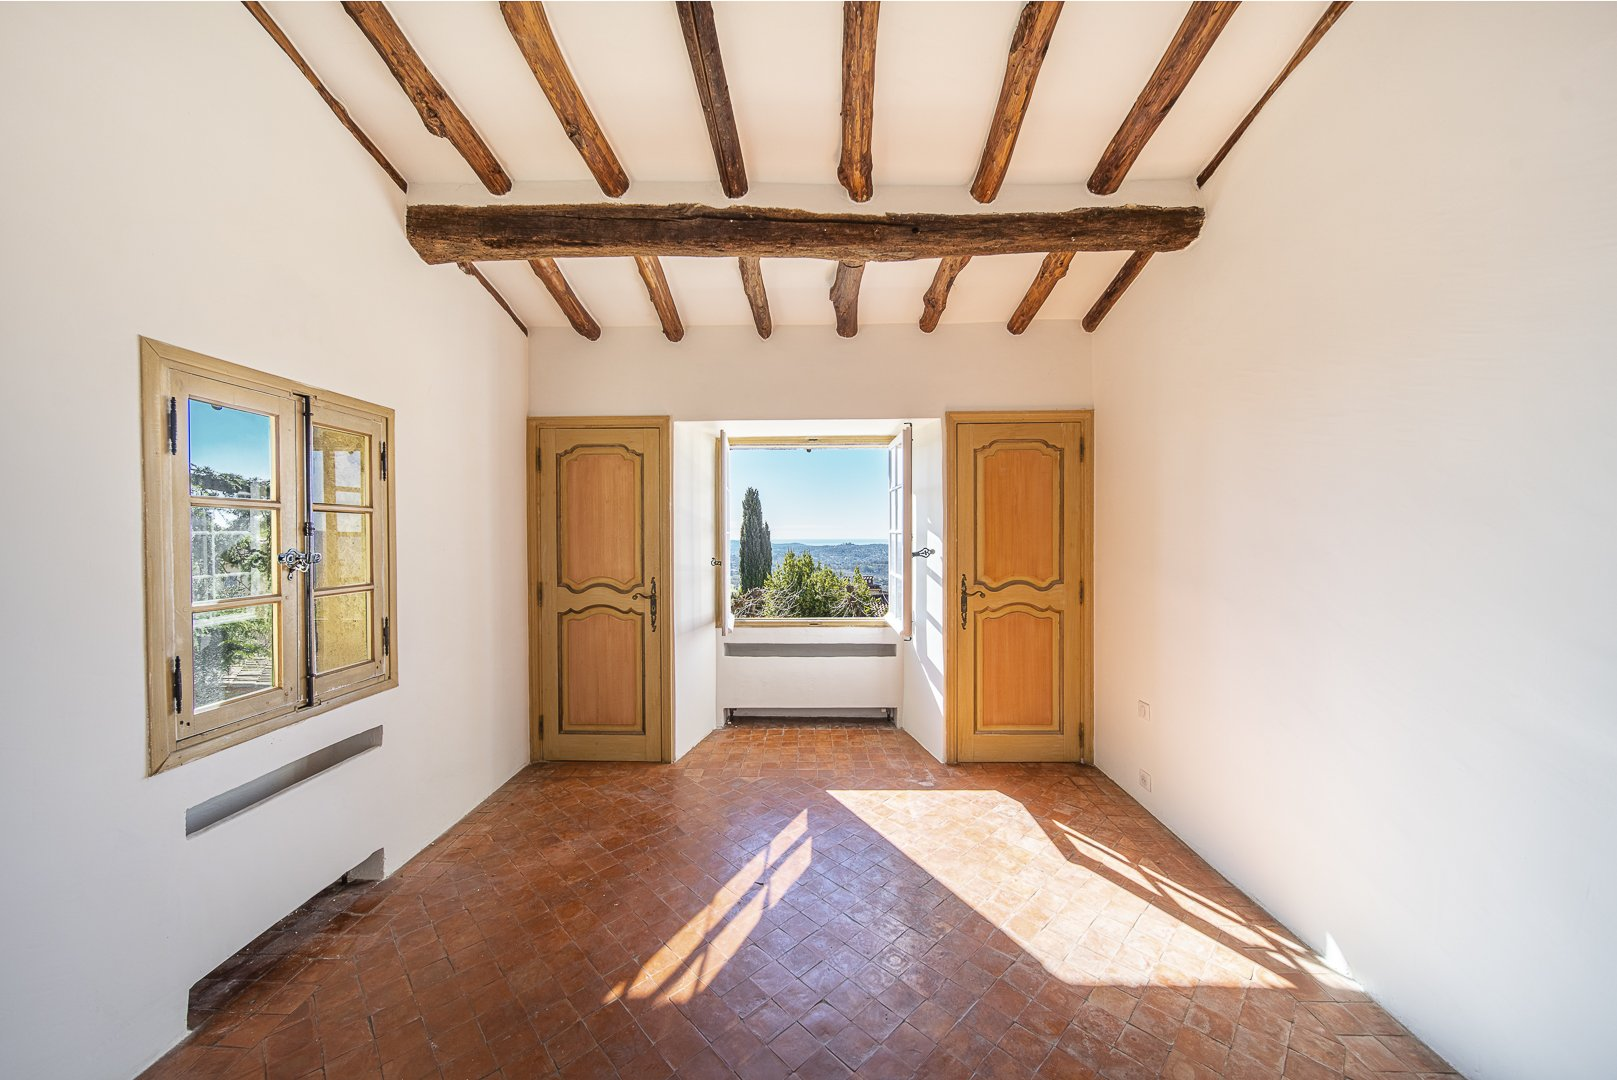 EXCEPTIONAL PANORAMIC SEA VIEW - WALKING DISTANCE TO THE VILLAGE